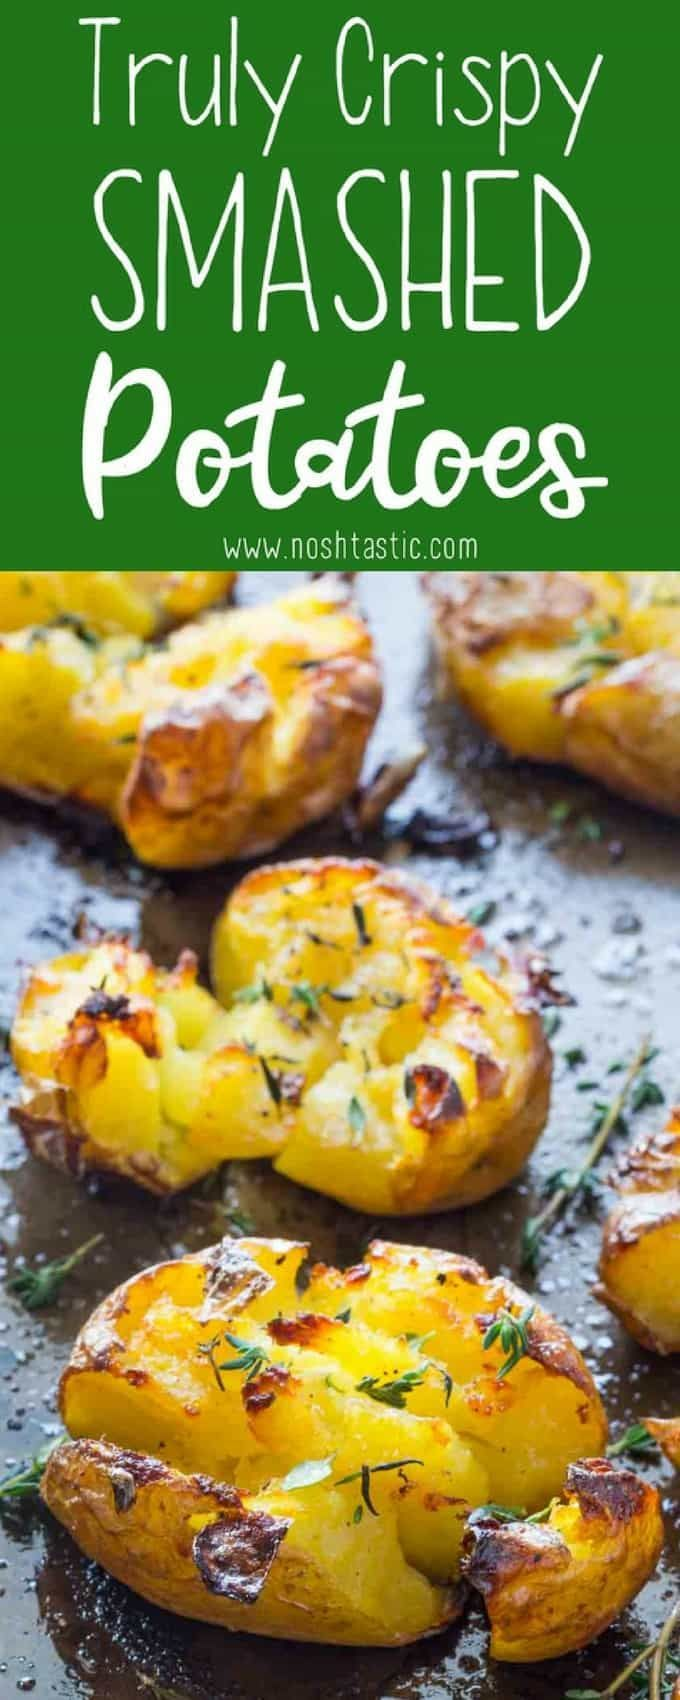 Smashed Potatoes baked with garlic, olive oil and herbs